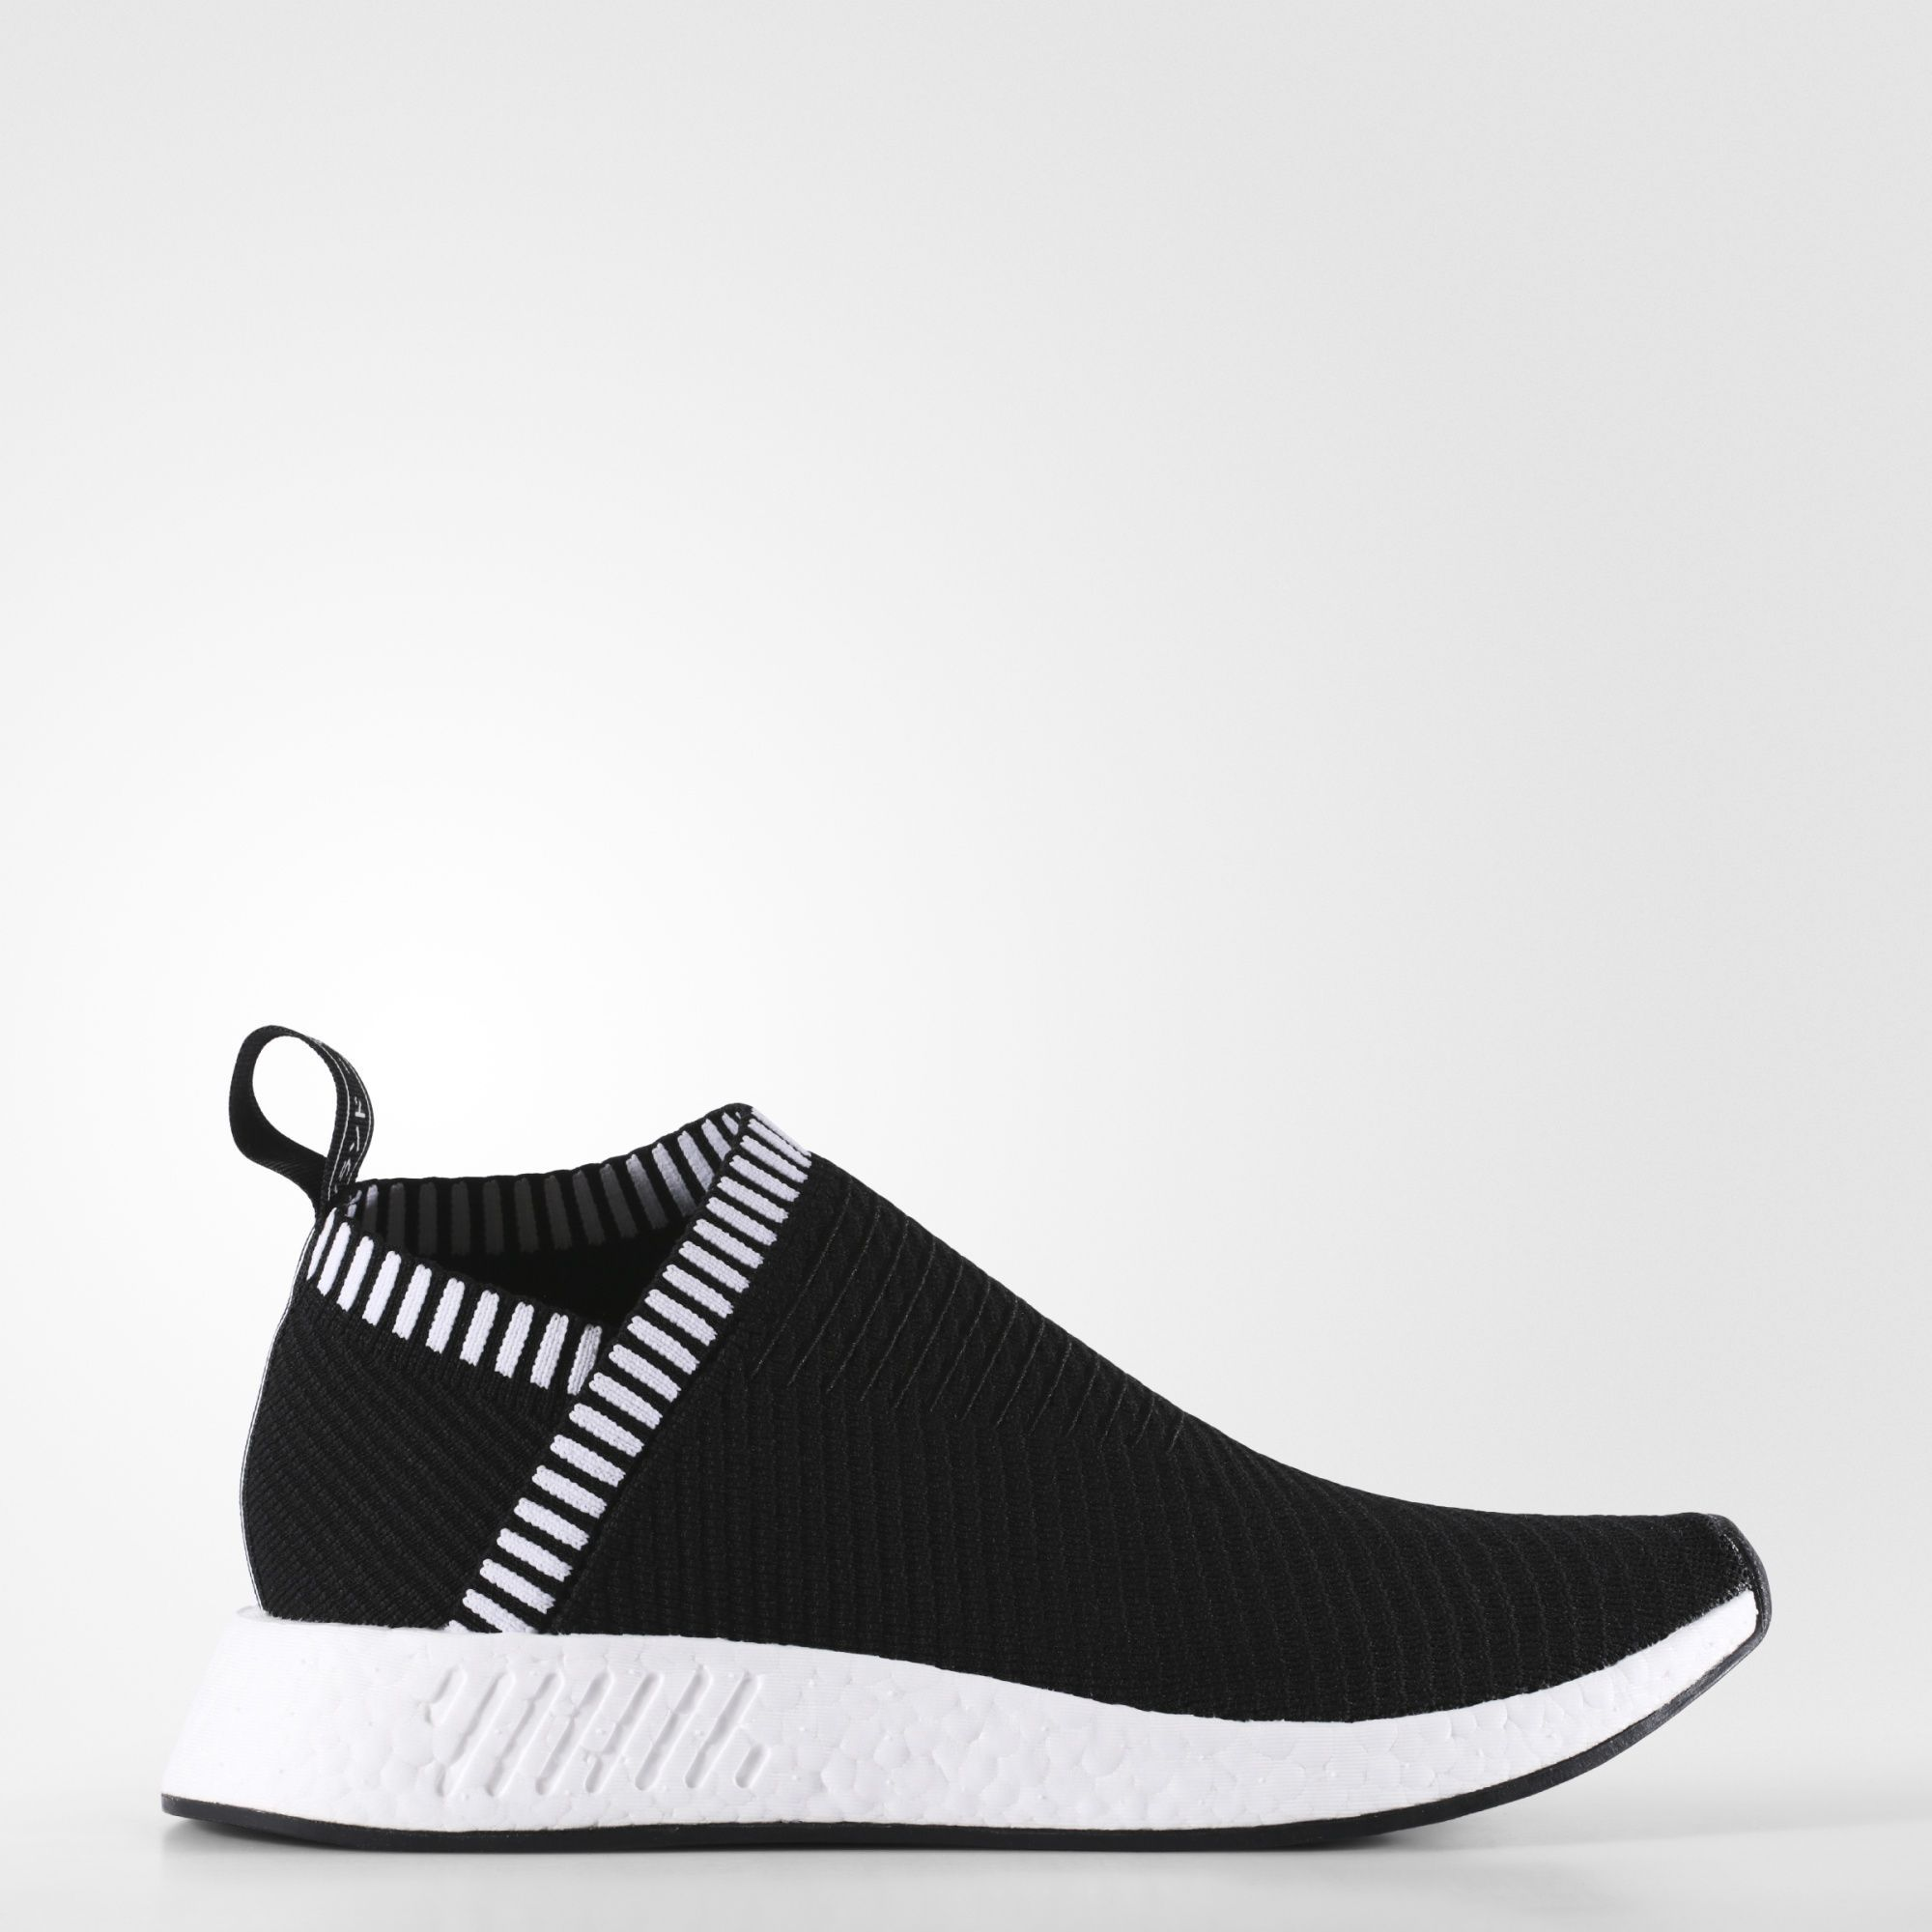 adidas NMD_CS2 PRIMEKNIT | Adidas fashion, Sneakers men